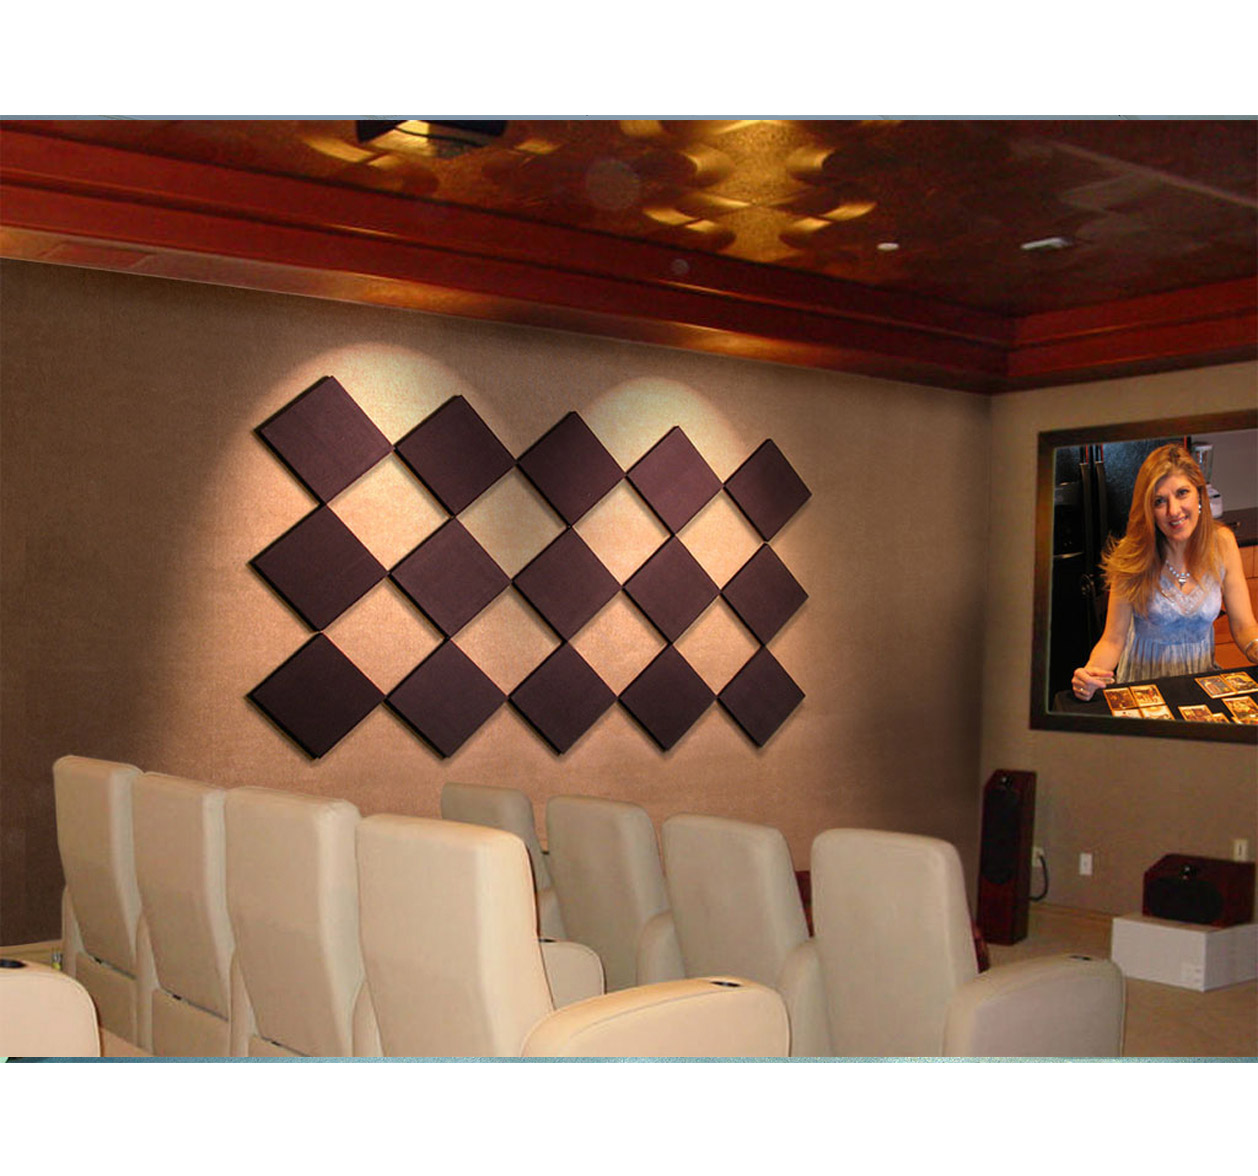 control cubes scatterblocks in home theatre